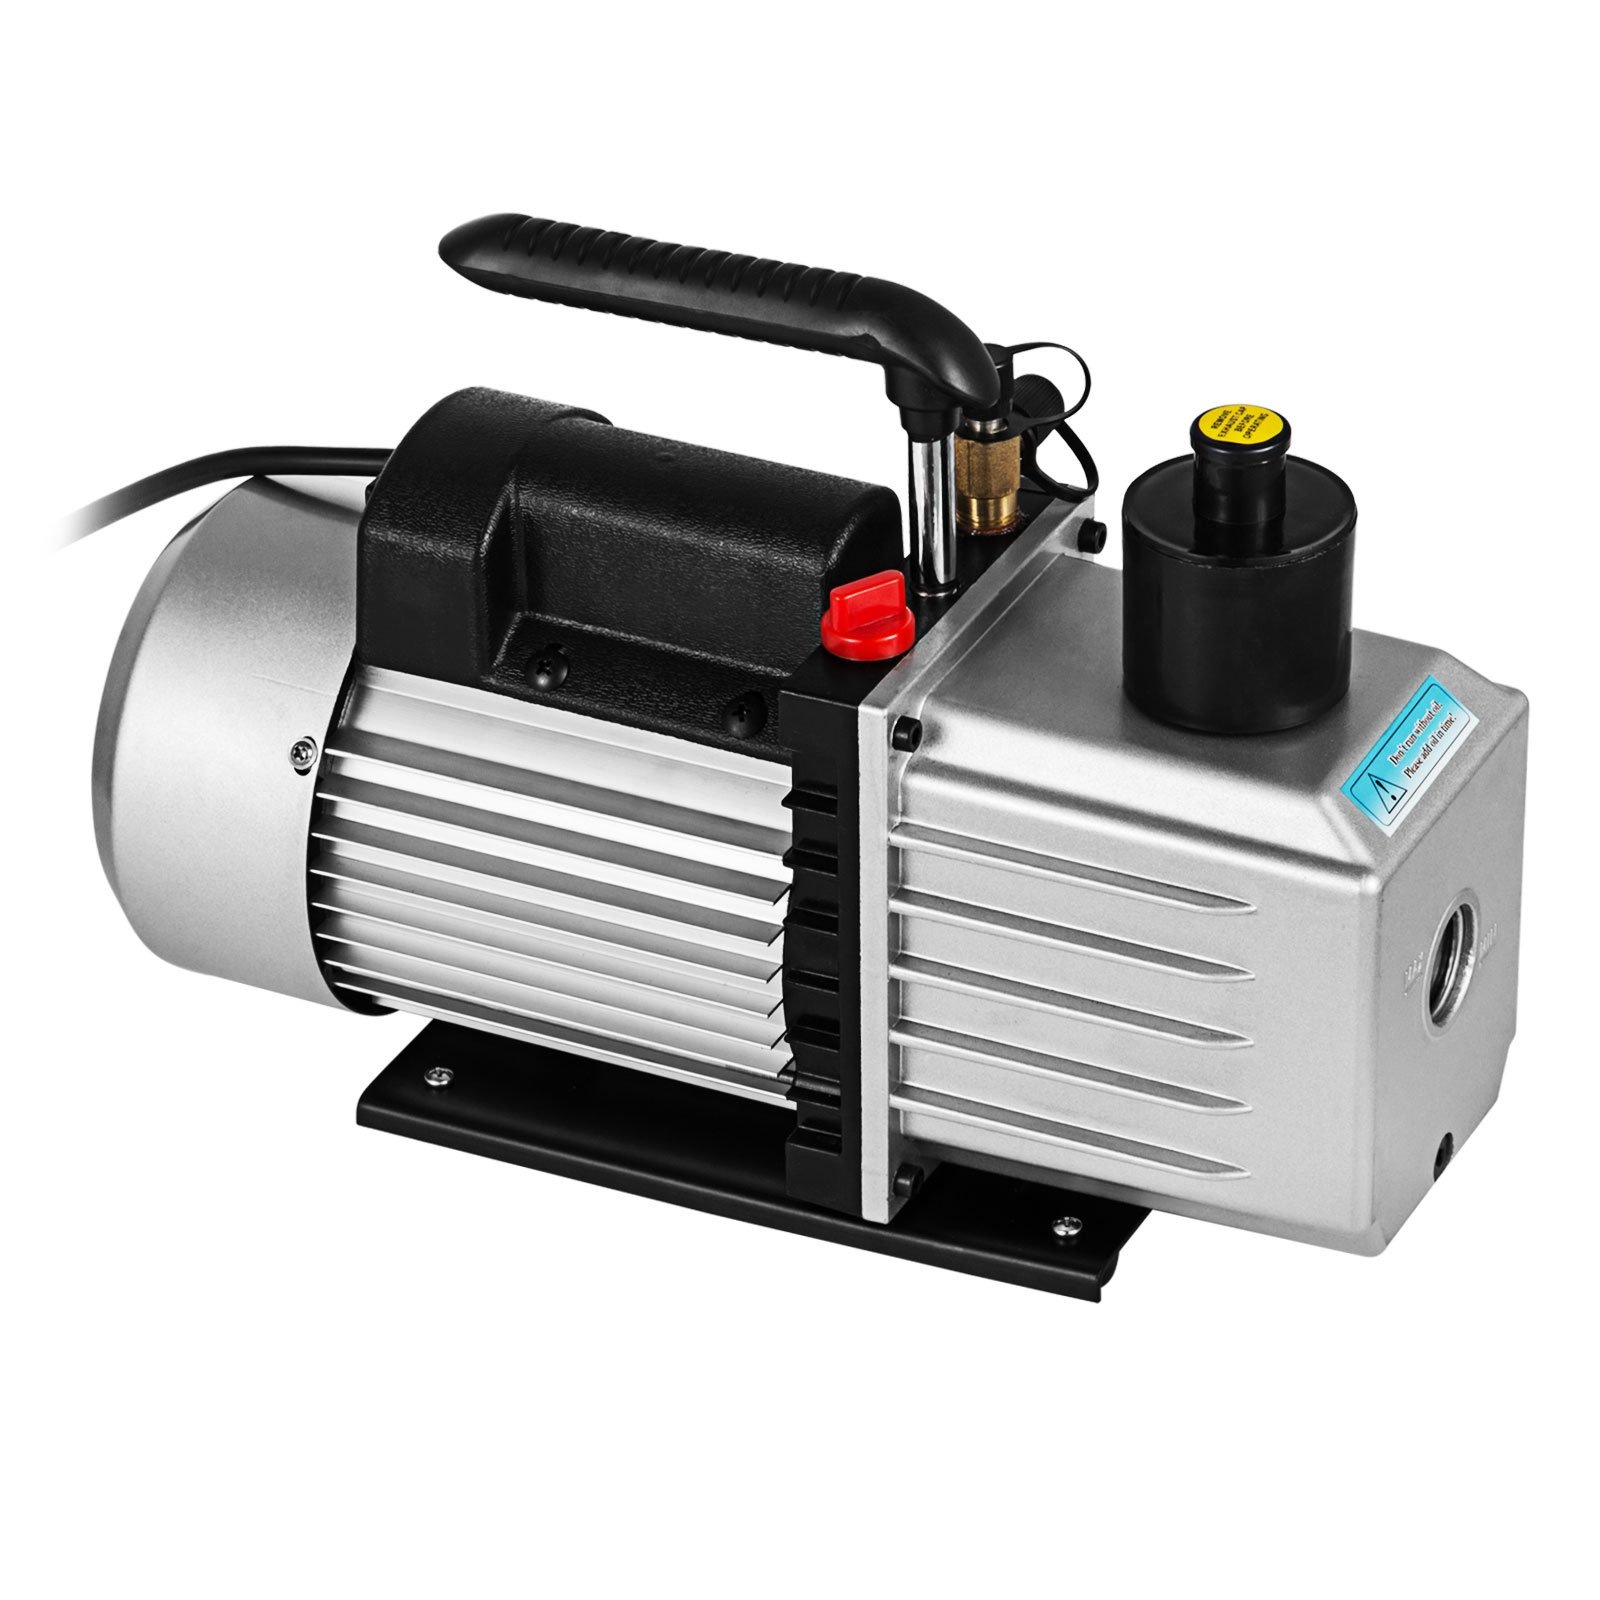 VEVOR Vacuum Pump 8CFM 1HP Two Stage HVAC Rotary Vane Vacuum Pump Wine Degassing Milking Medical Food Processing Air Conditioning Auto AC Refrigerant Vacuum Pump (2-Stage, 8CFM) by VEVOR (Image #4)